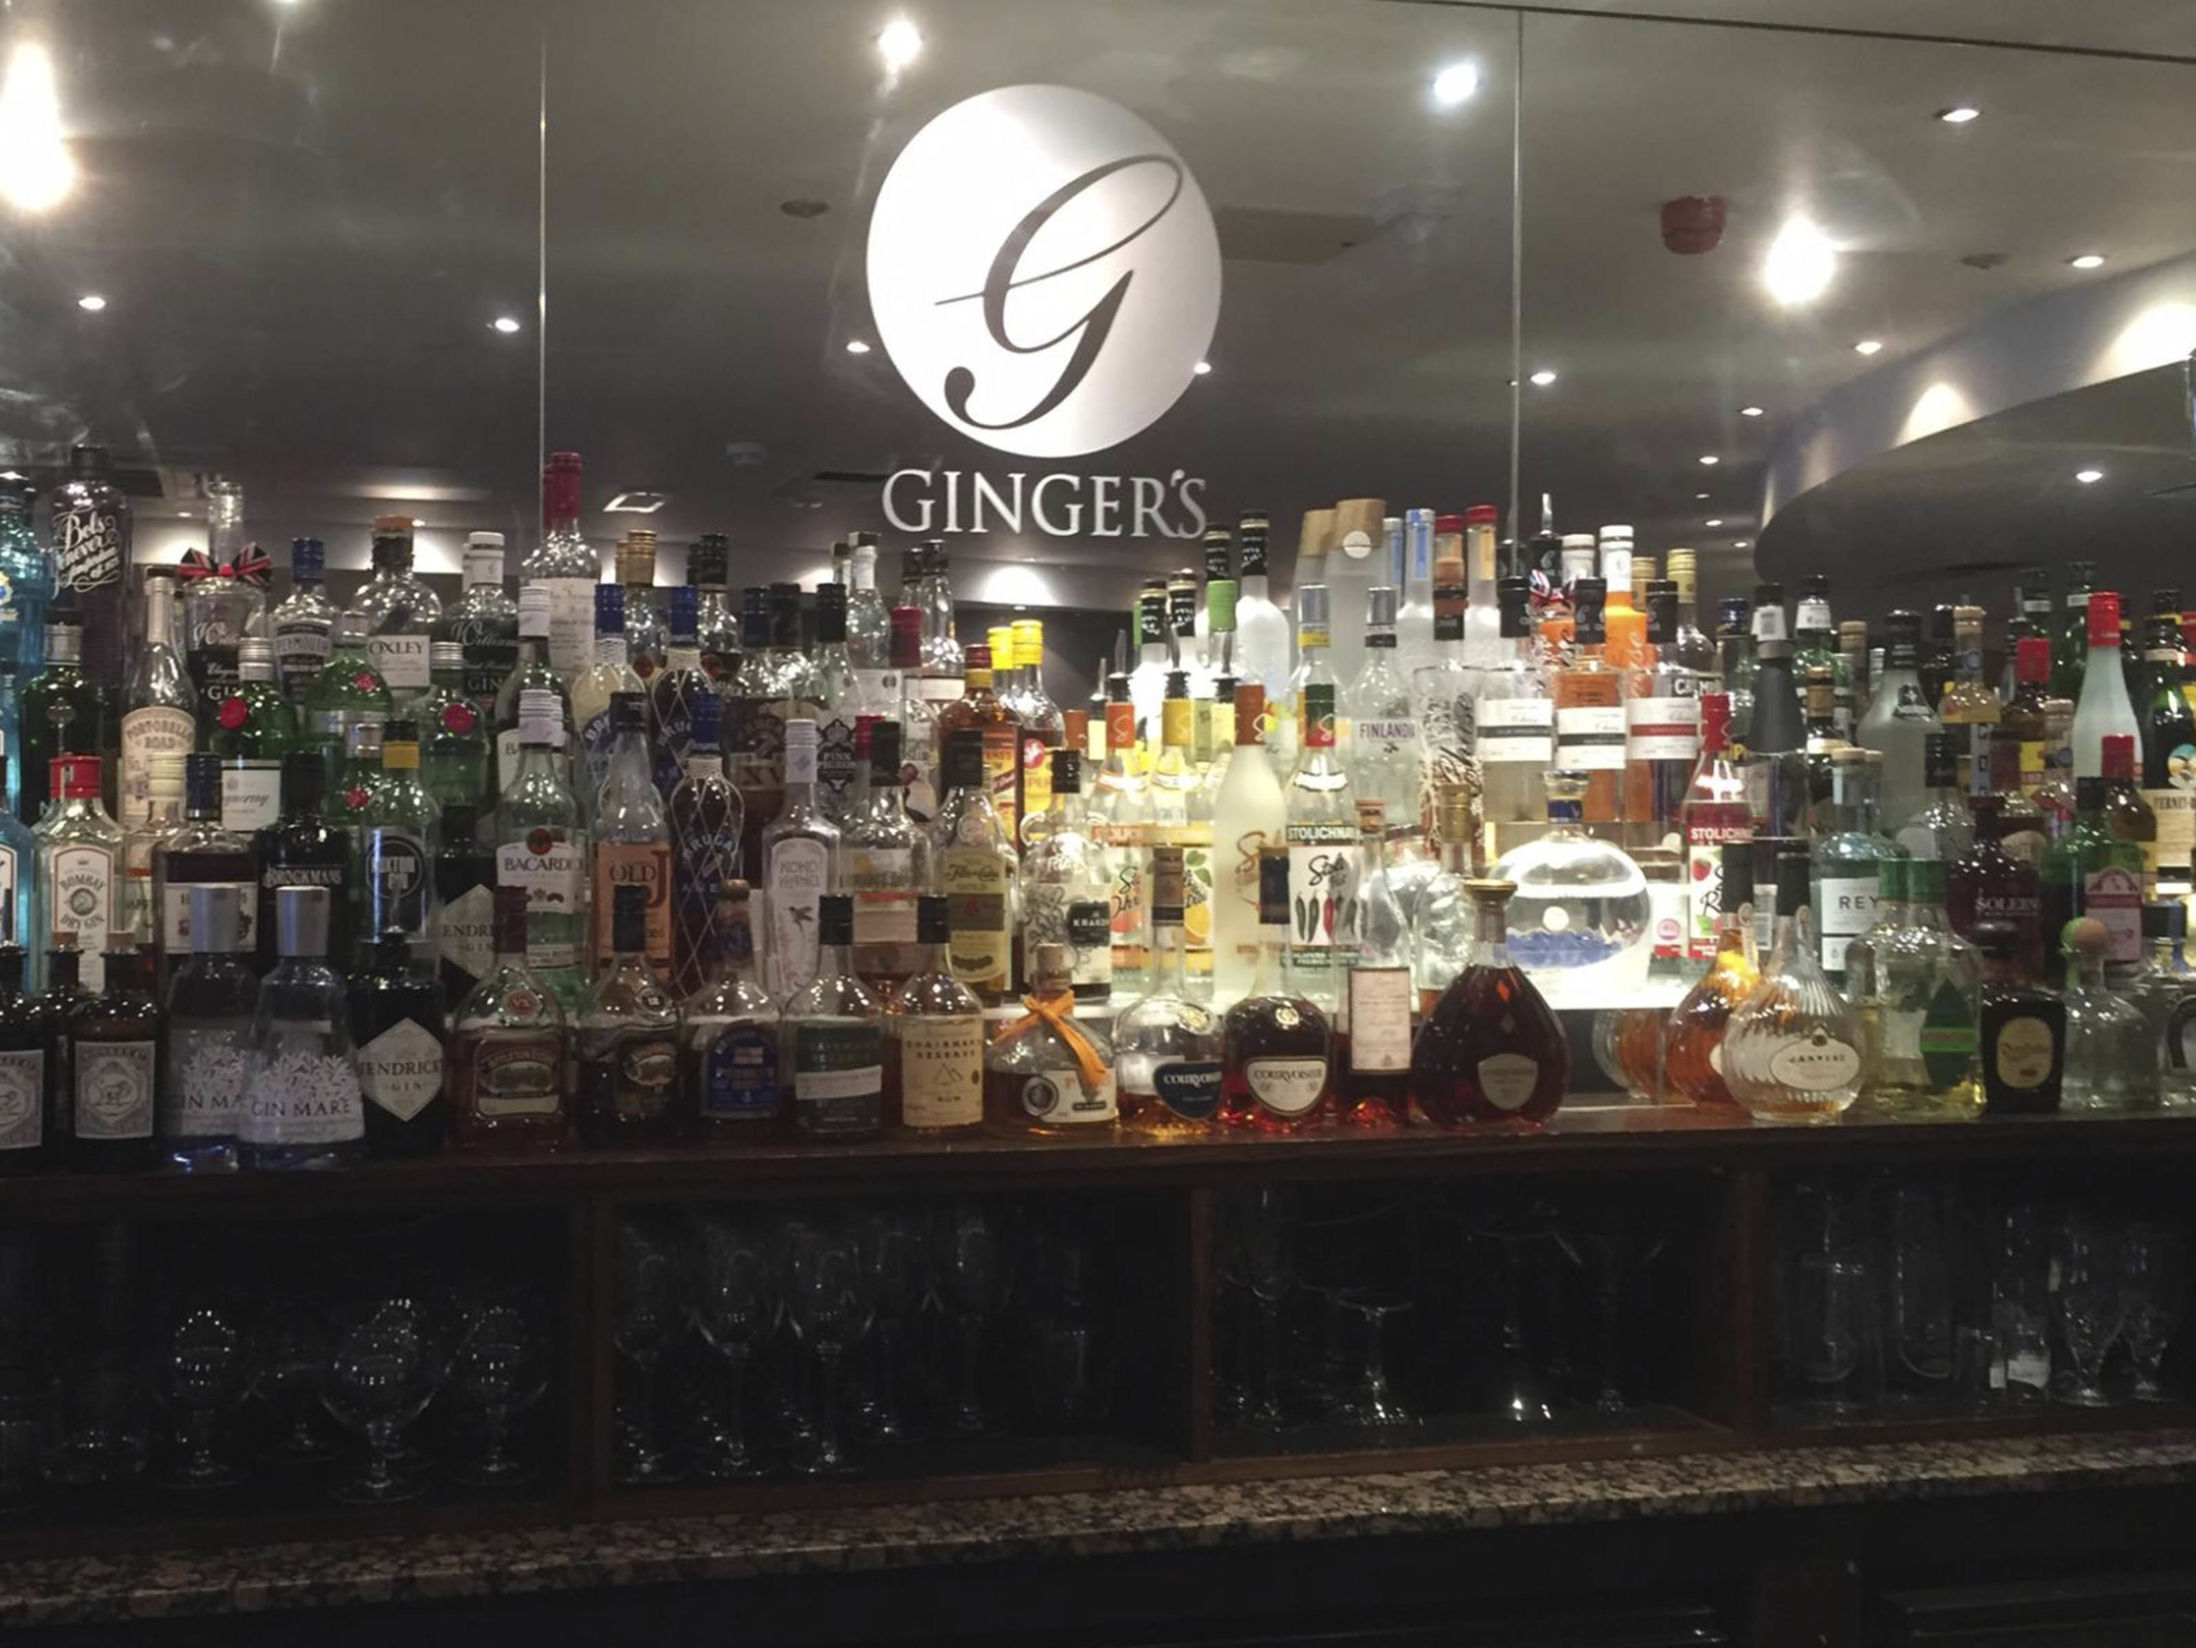 Best Bars in Birmingham - Purnell's Bistro & Ginger's Bar